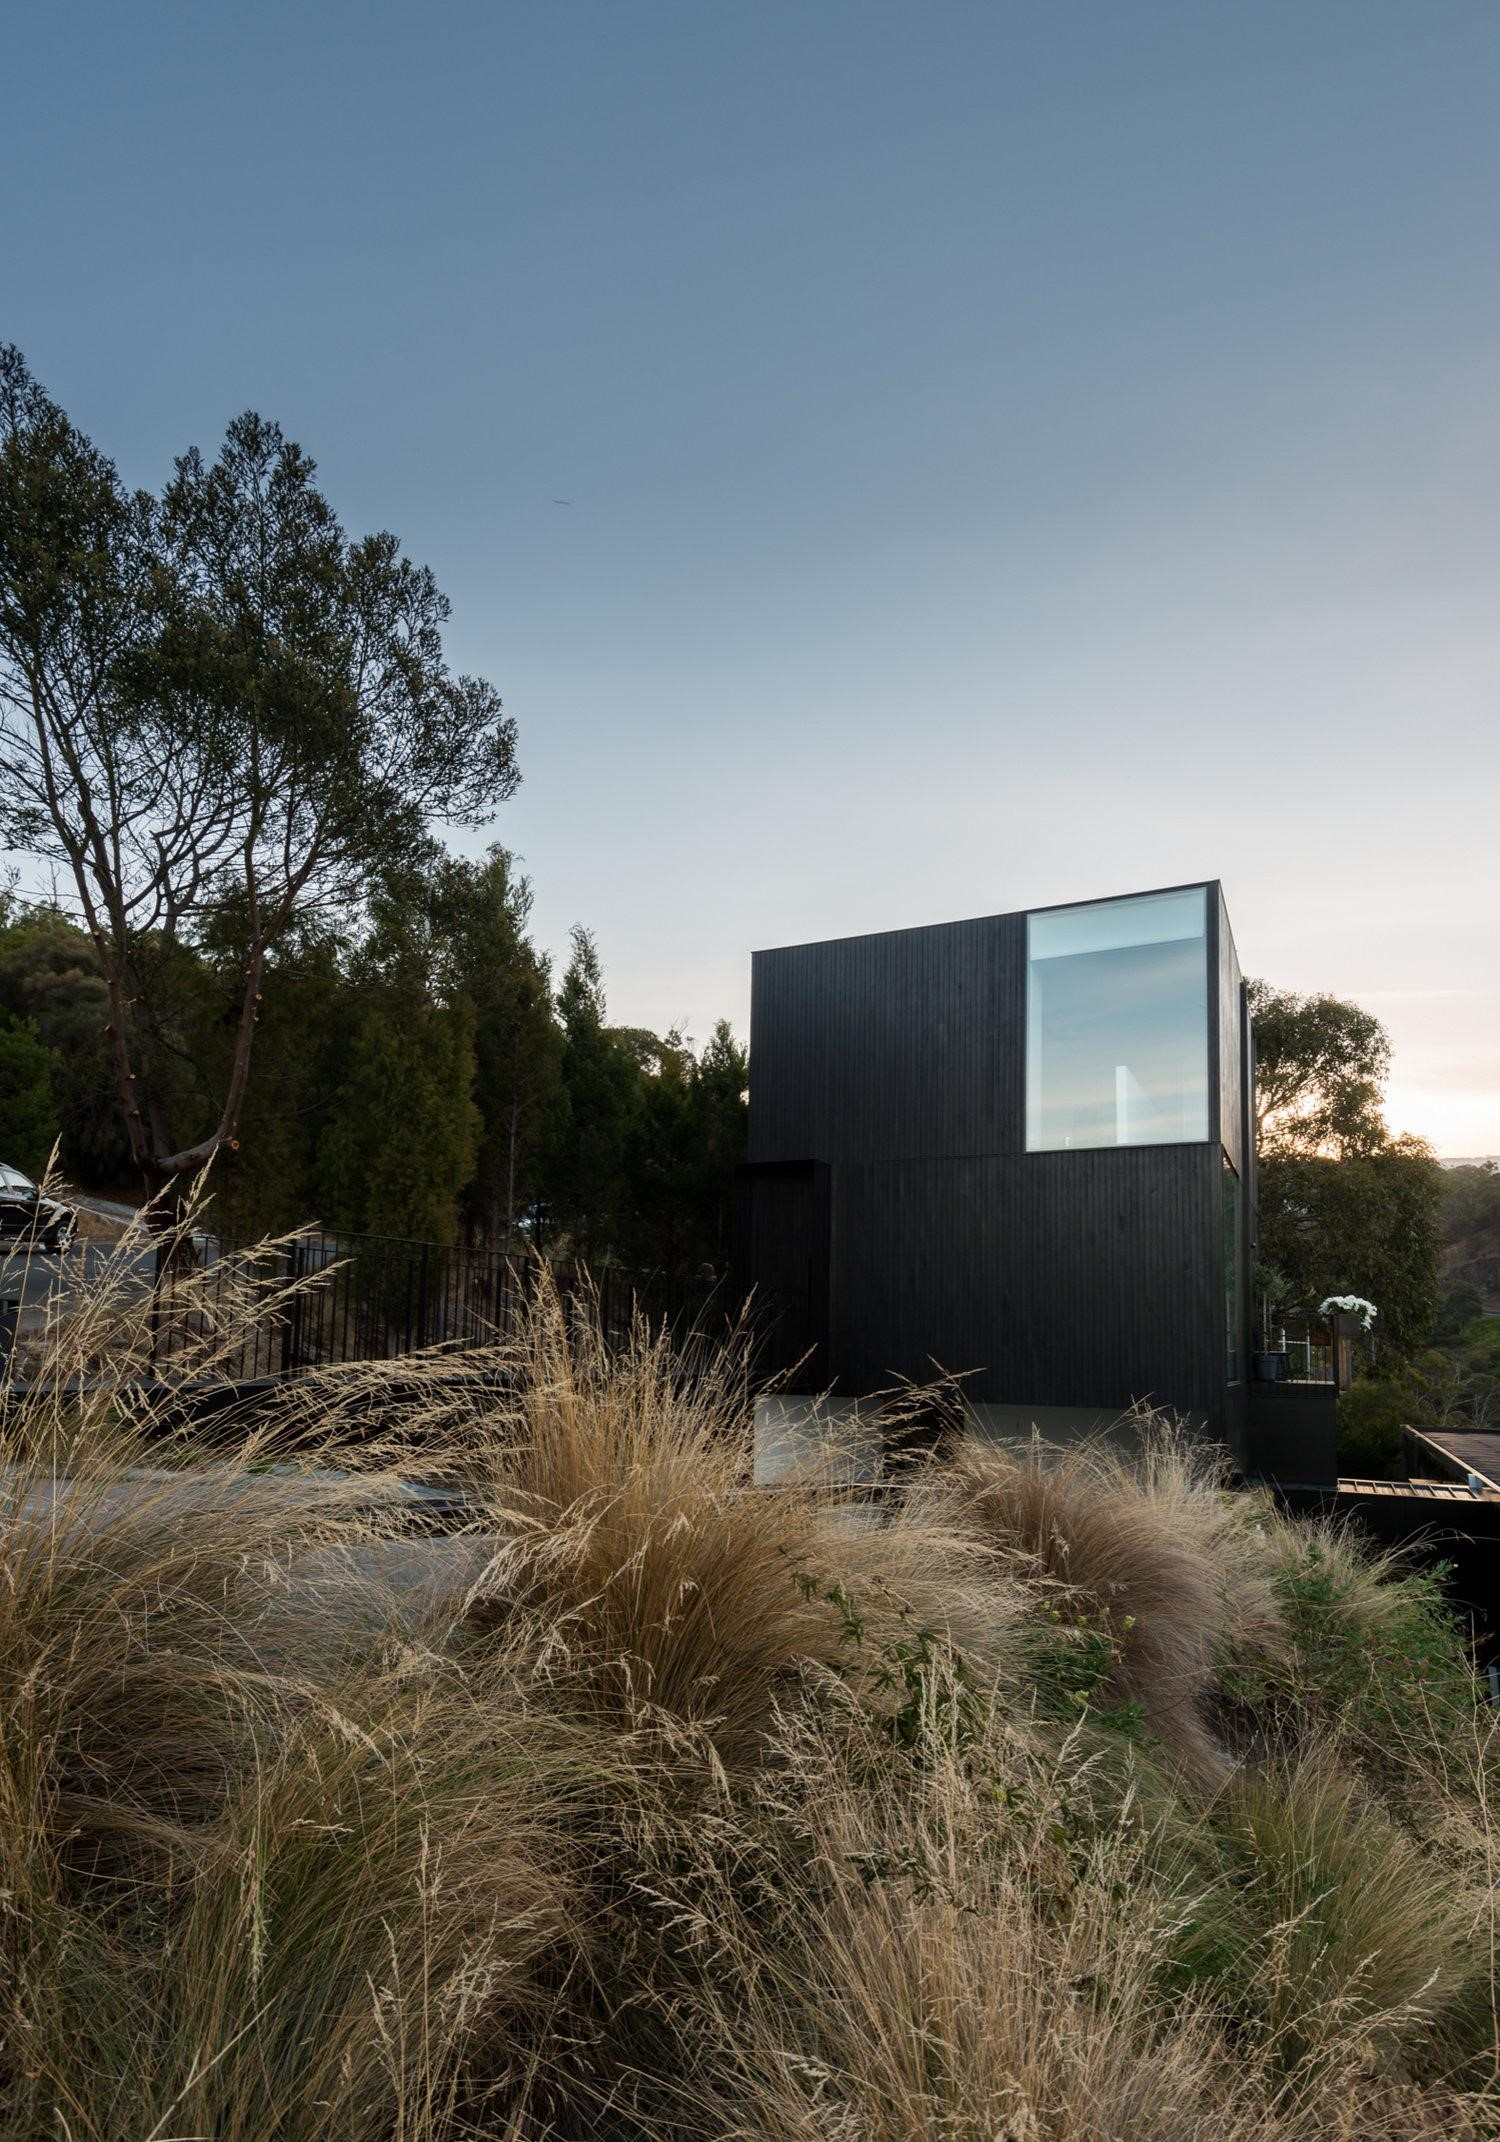 With Sweeping Uninterrupted Views Over The Existing Residence To The Landscape Beyond.